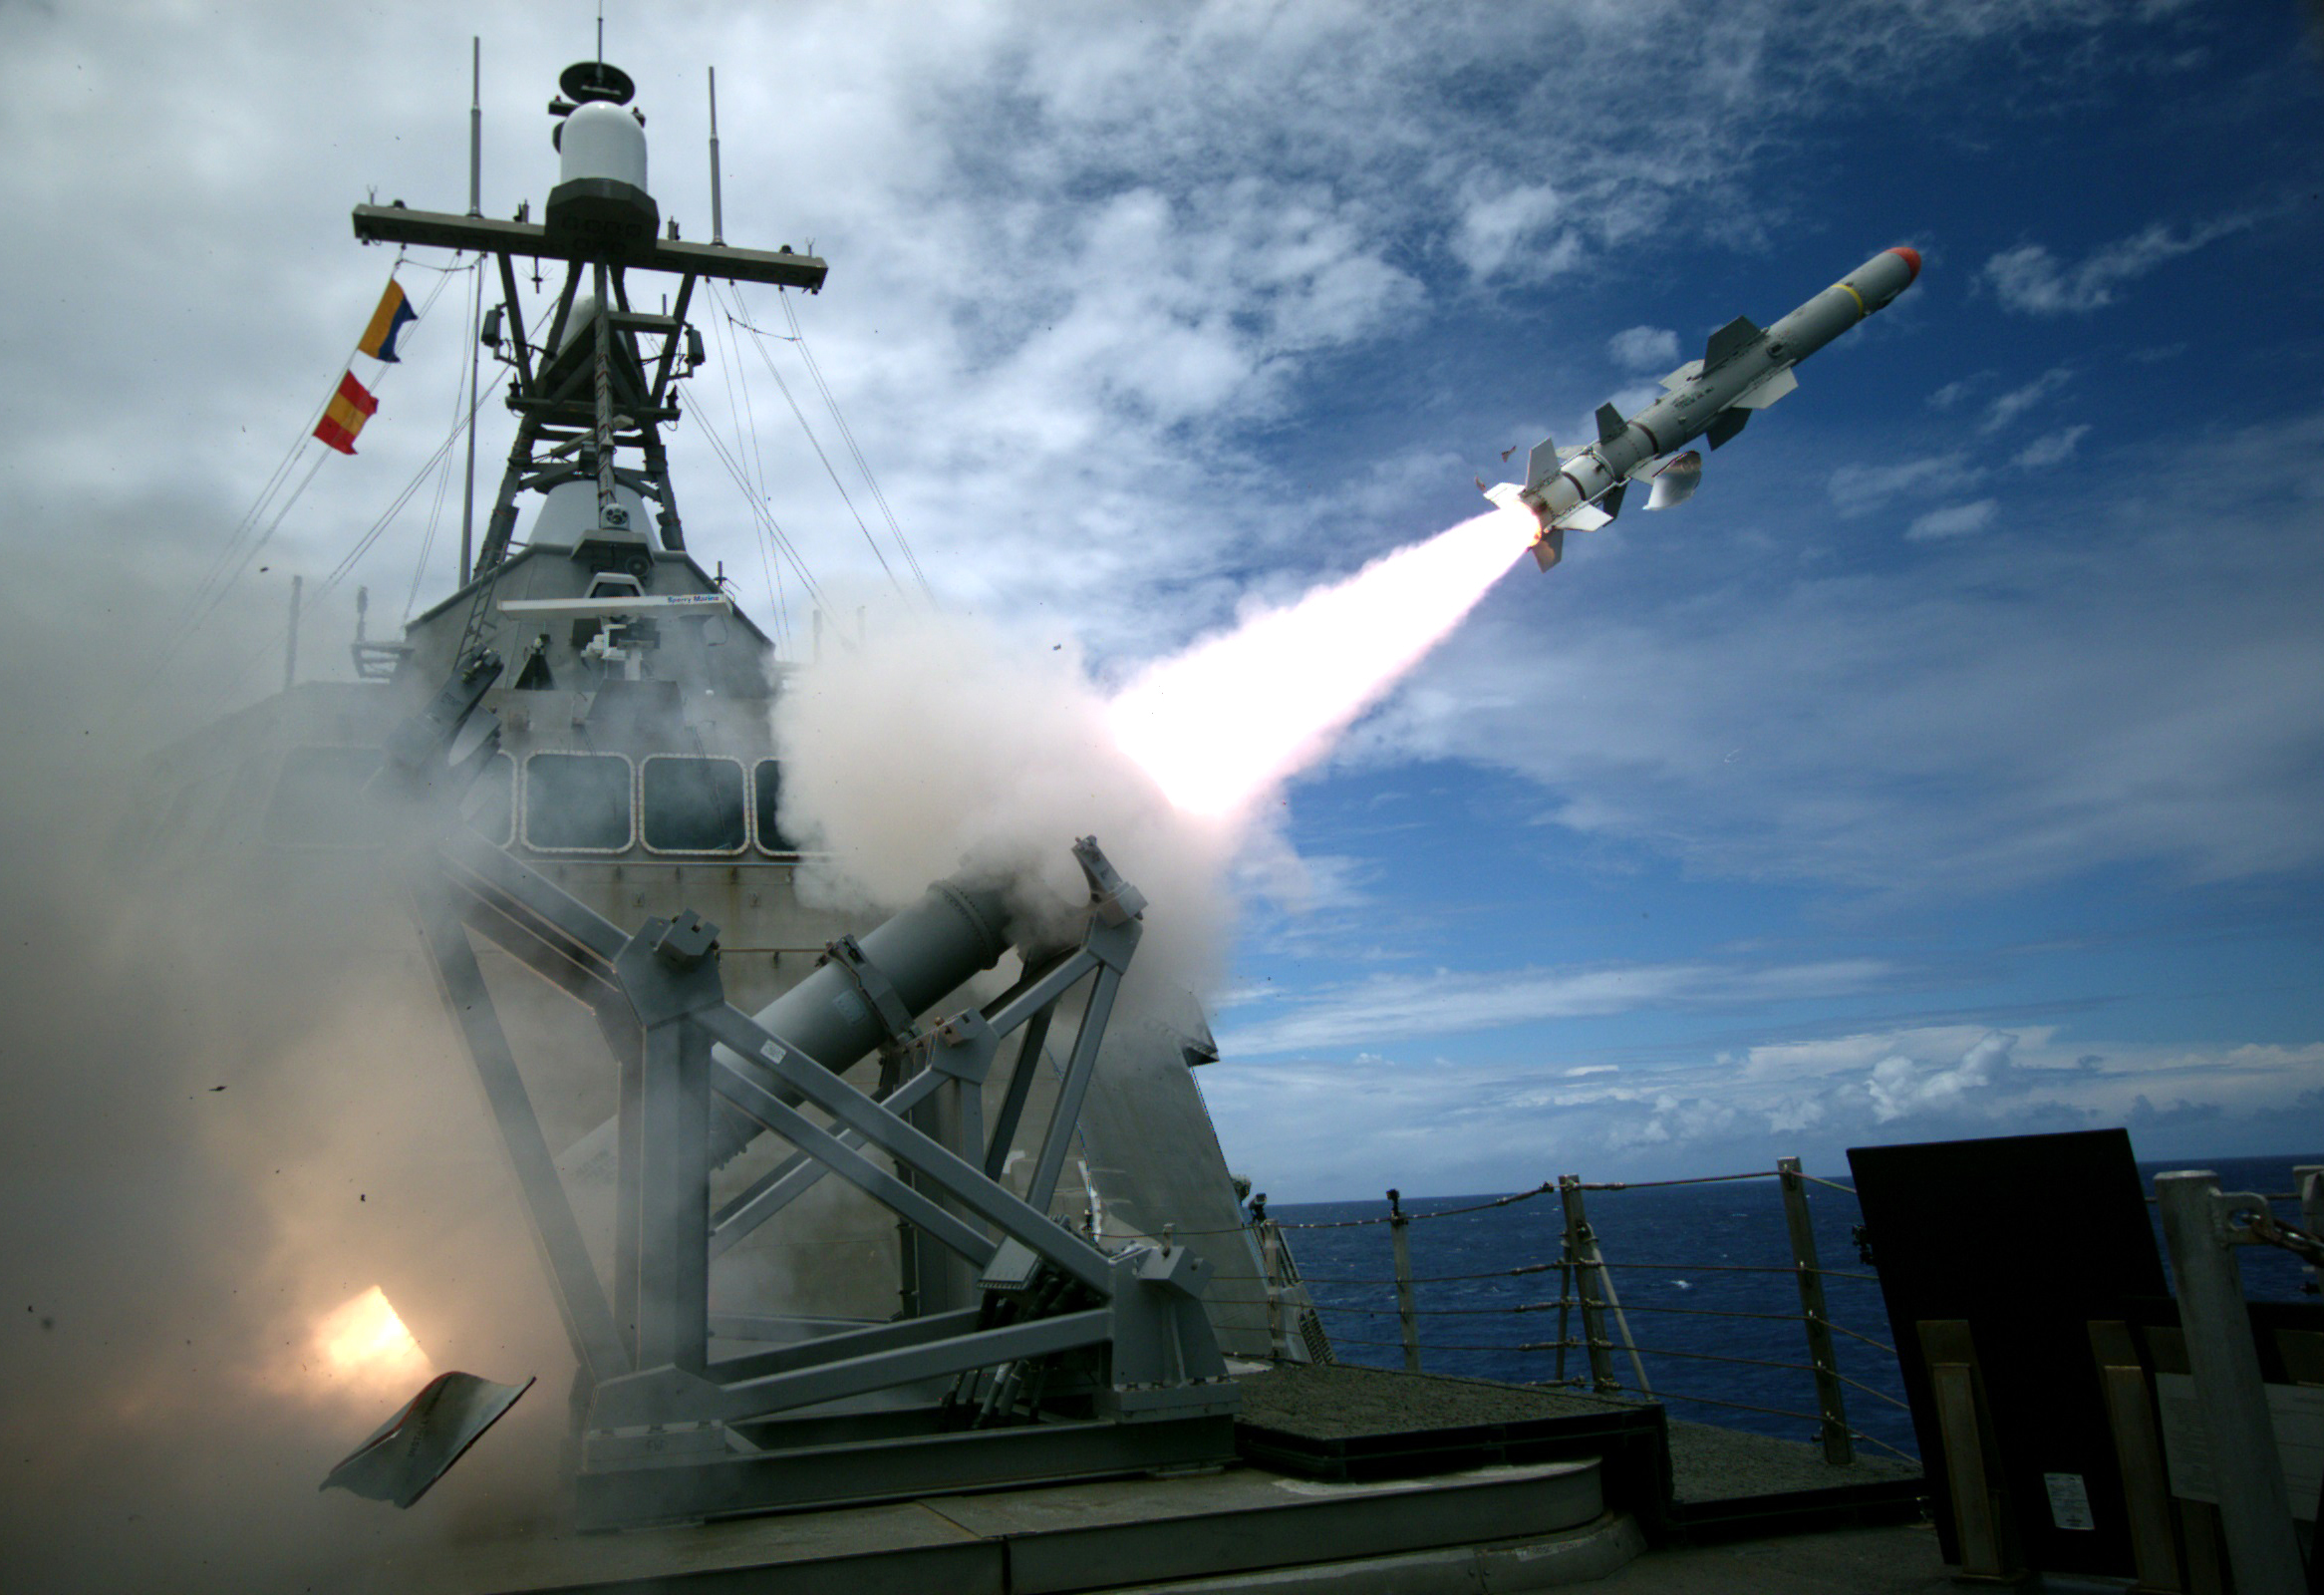 USS Coronado (LCS 4), an Independence-variant littoral combat ship, launches the first over-the-horizon missile engagement using a Harpoon Block 1C missile. US Navy photo.